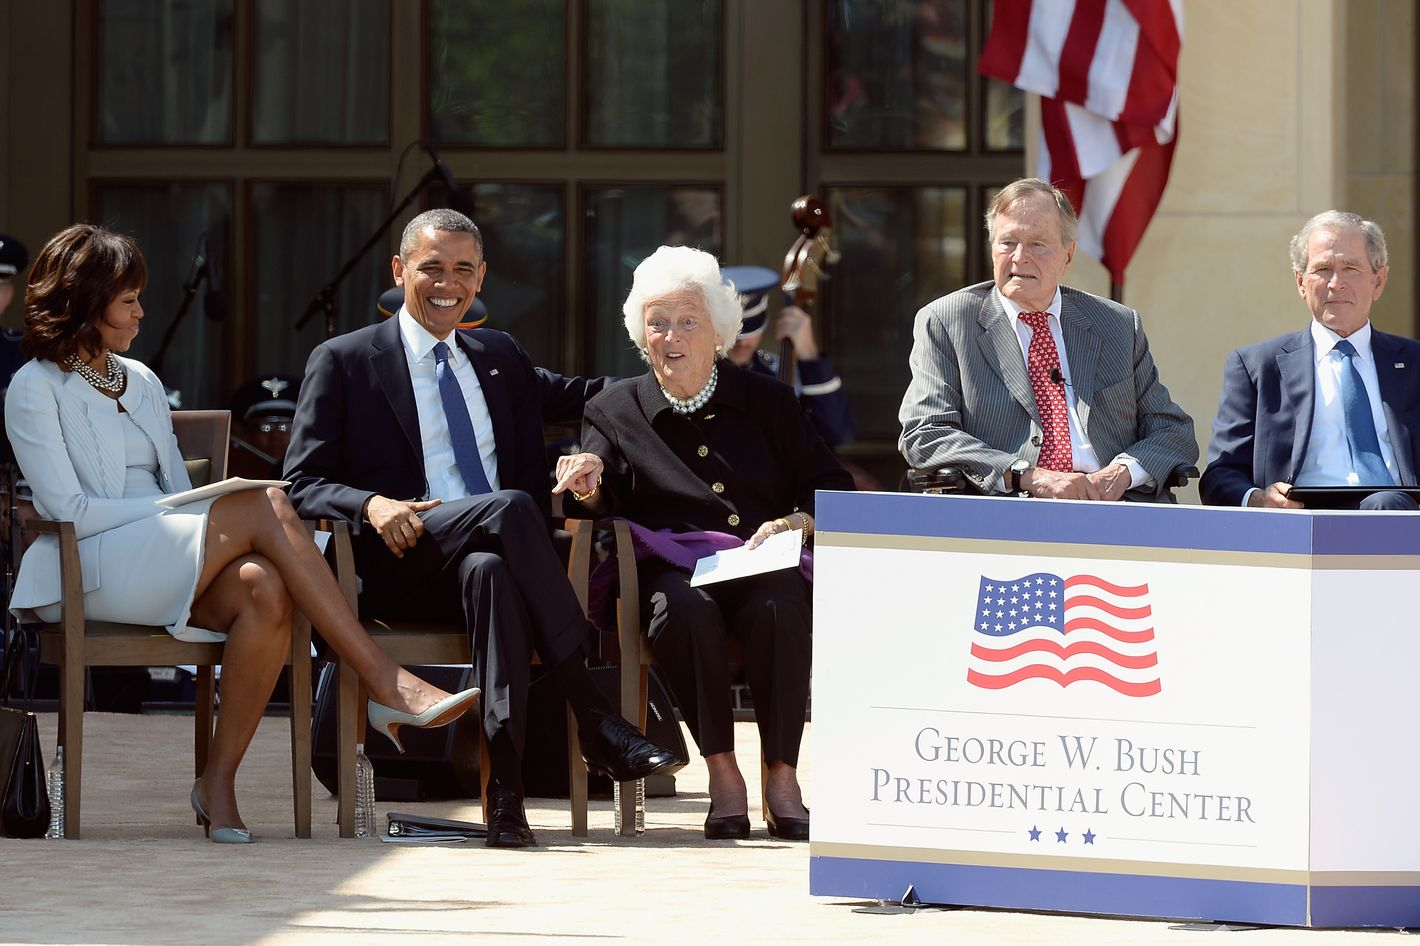 DALLAS, TX - APRIL 25:  (L-R) First lady Michelle Obama, U.S. President Barack Obama, former first lady Barbara Bush, former President George H.W. Bush and former President George W. Bush attend the opening ceremony of the George W. Bush Presidential Center April 25, 2013 in Dallas, Texas. The Bush library, which is located on the campus of Southern Methodist University, with more than 70 million pages of paper records, 43,000 artifacts, 200 million emails and four million digital photographs, will be opened to the public on May 1, 2013. The library is the 13th presidential library in the National Archives and Records Administration system.  (Photo by Kevork Djansezian/Getty Images)